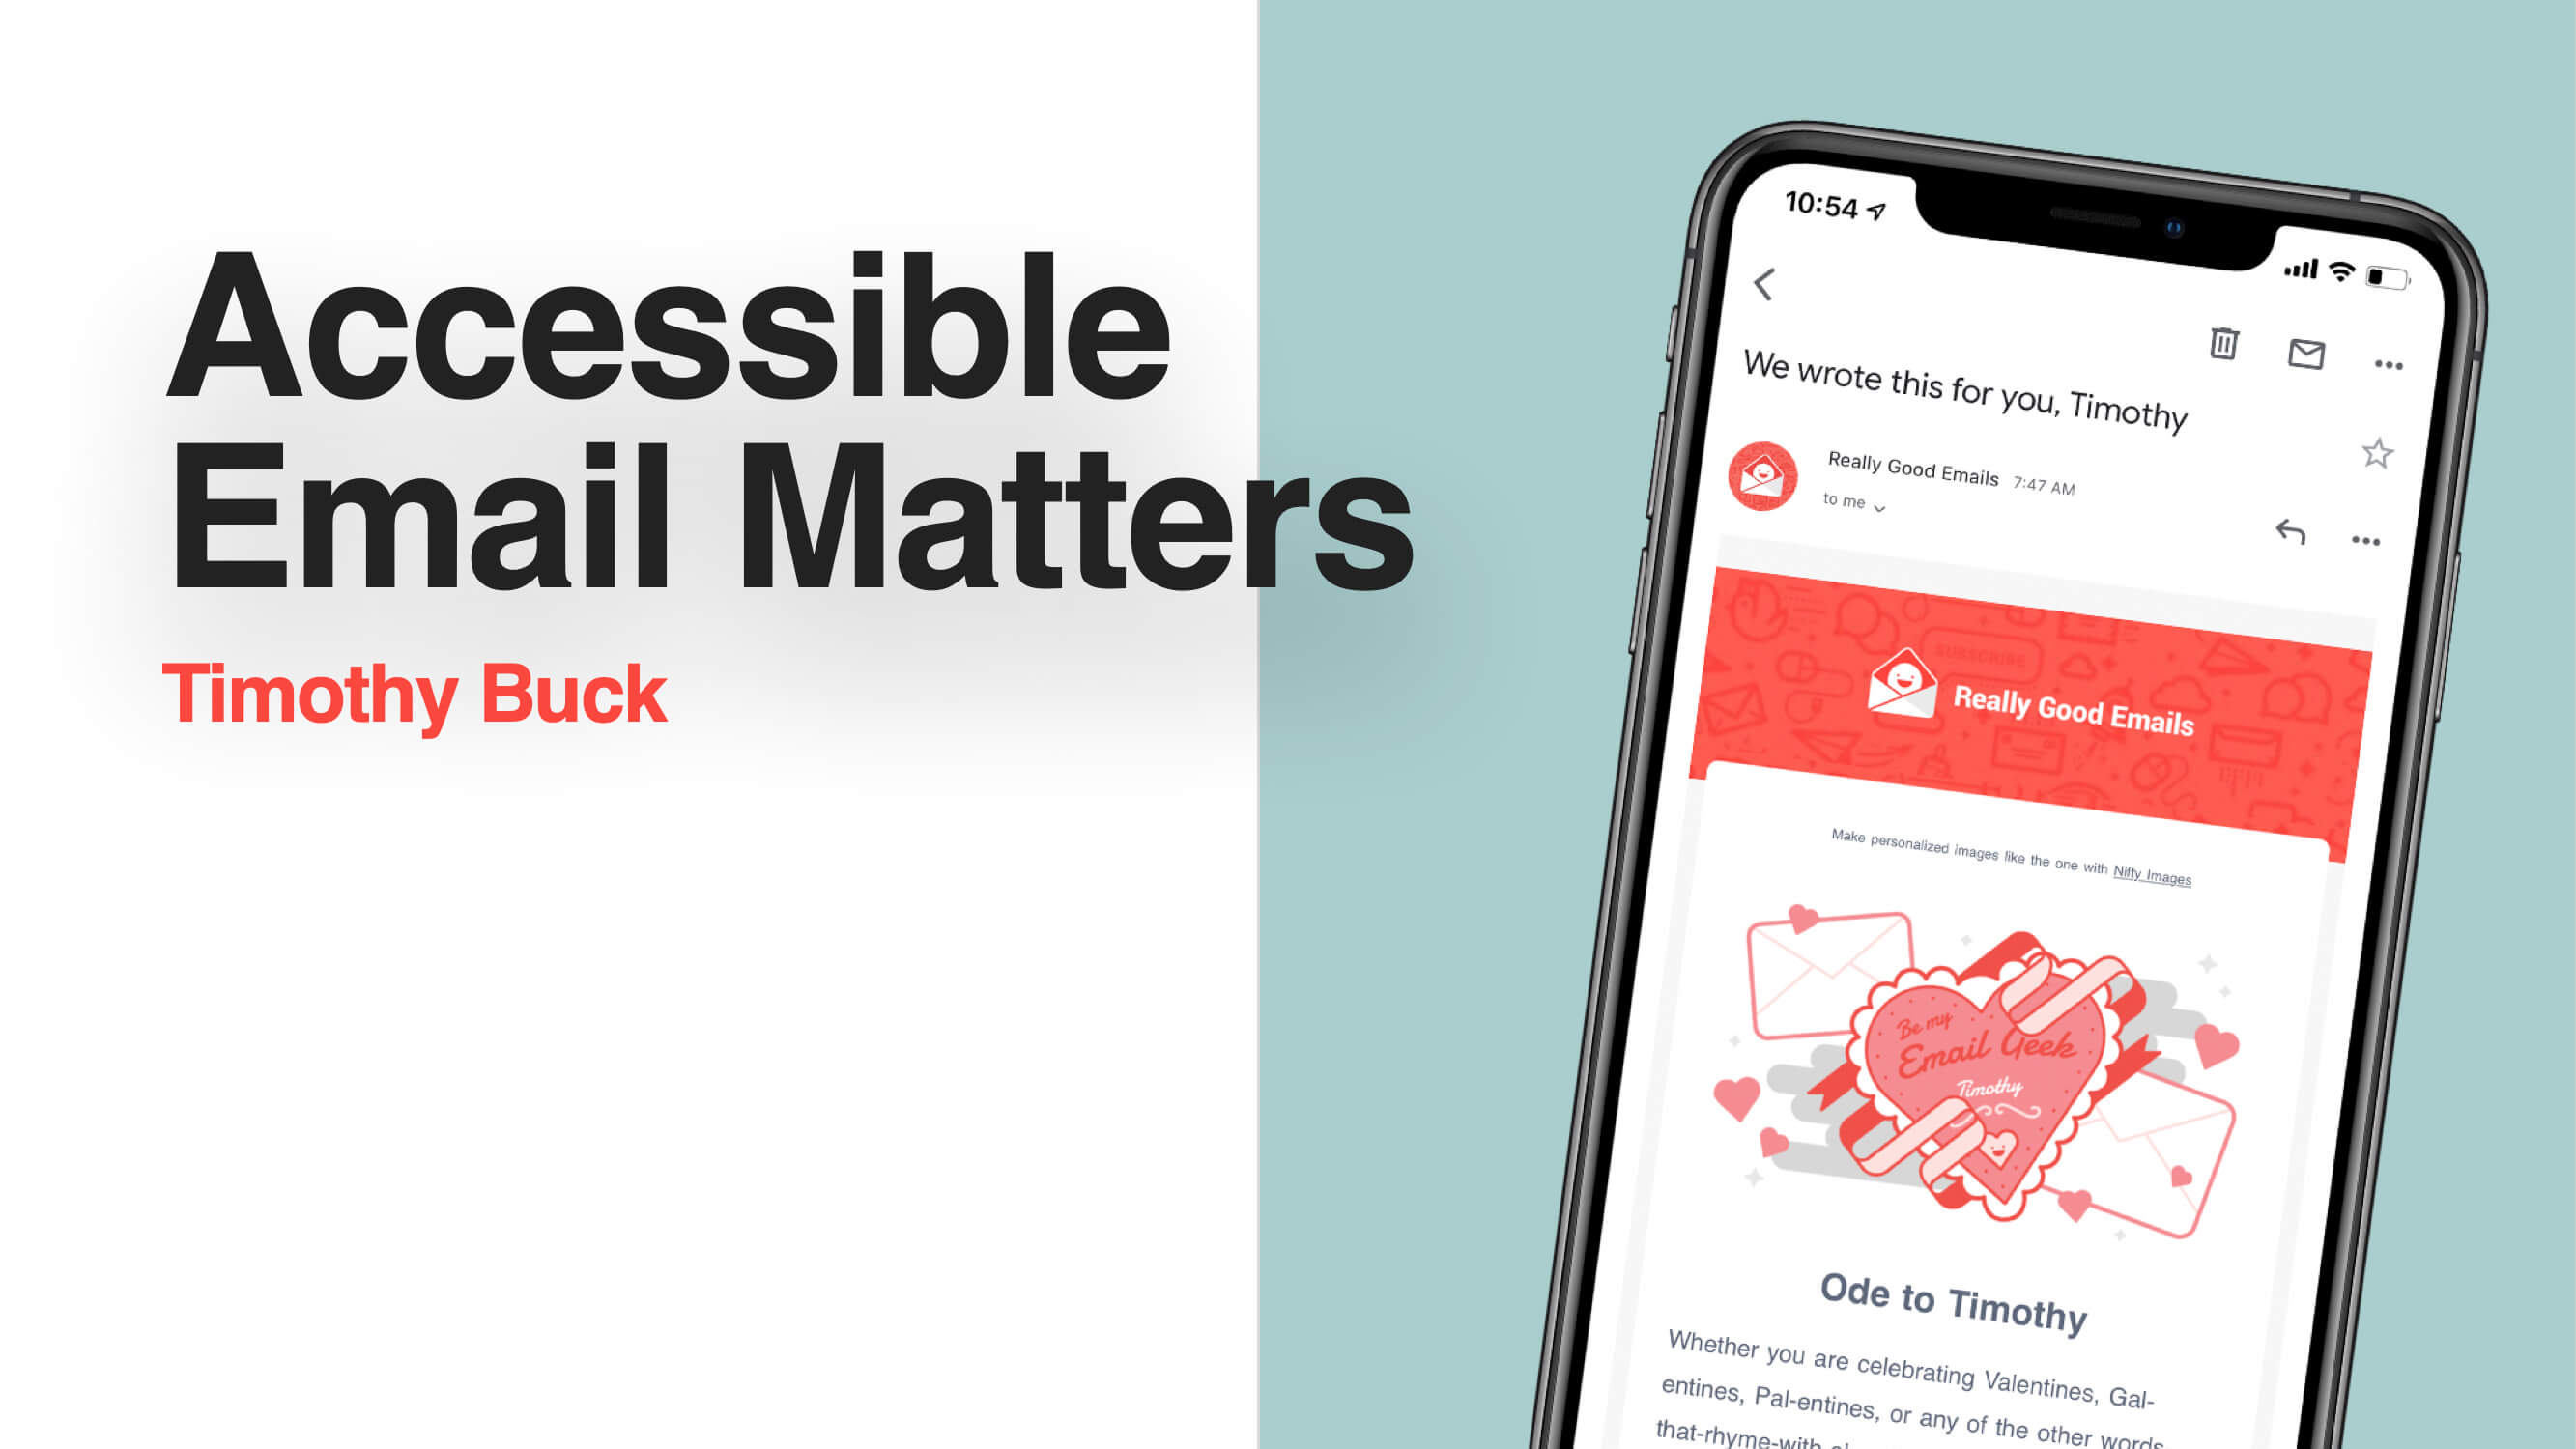 accessible-email-matters-with-timothy-buck